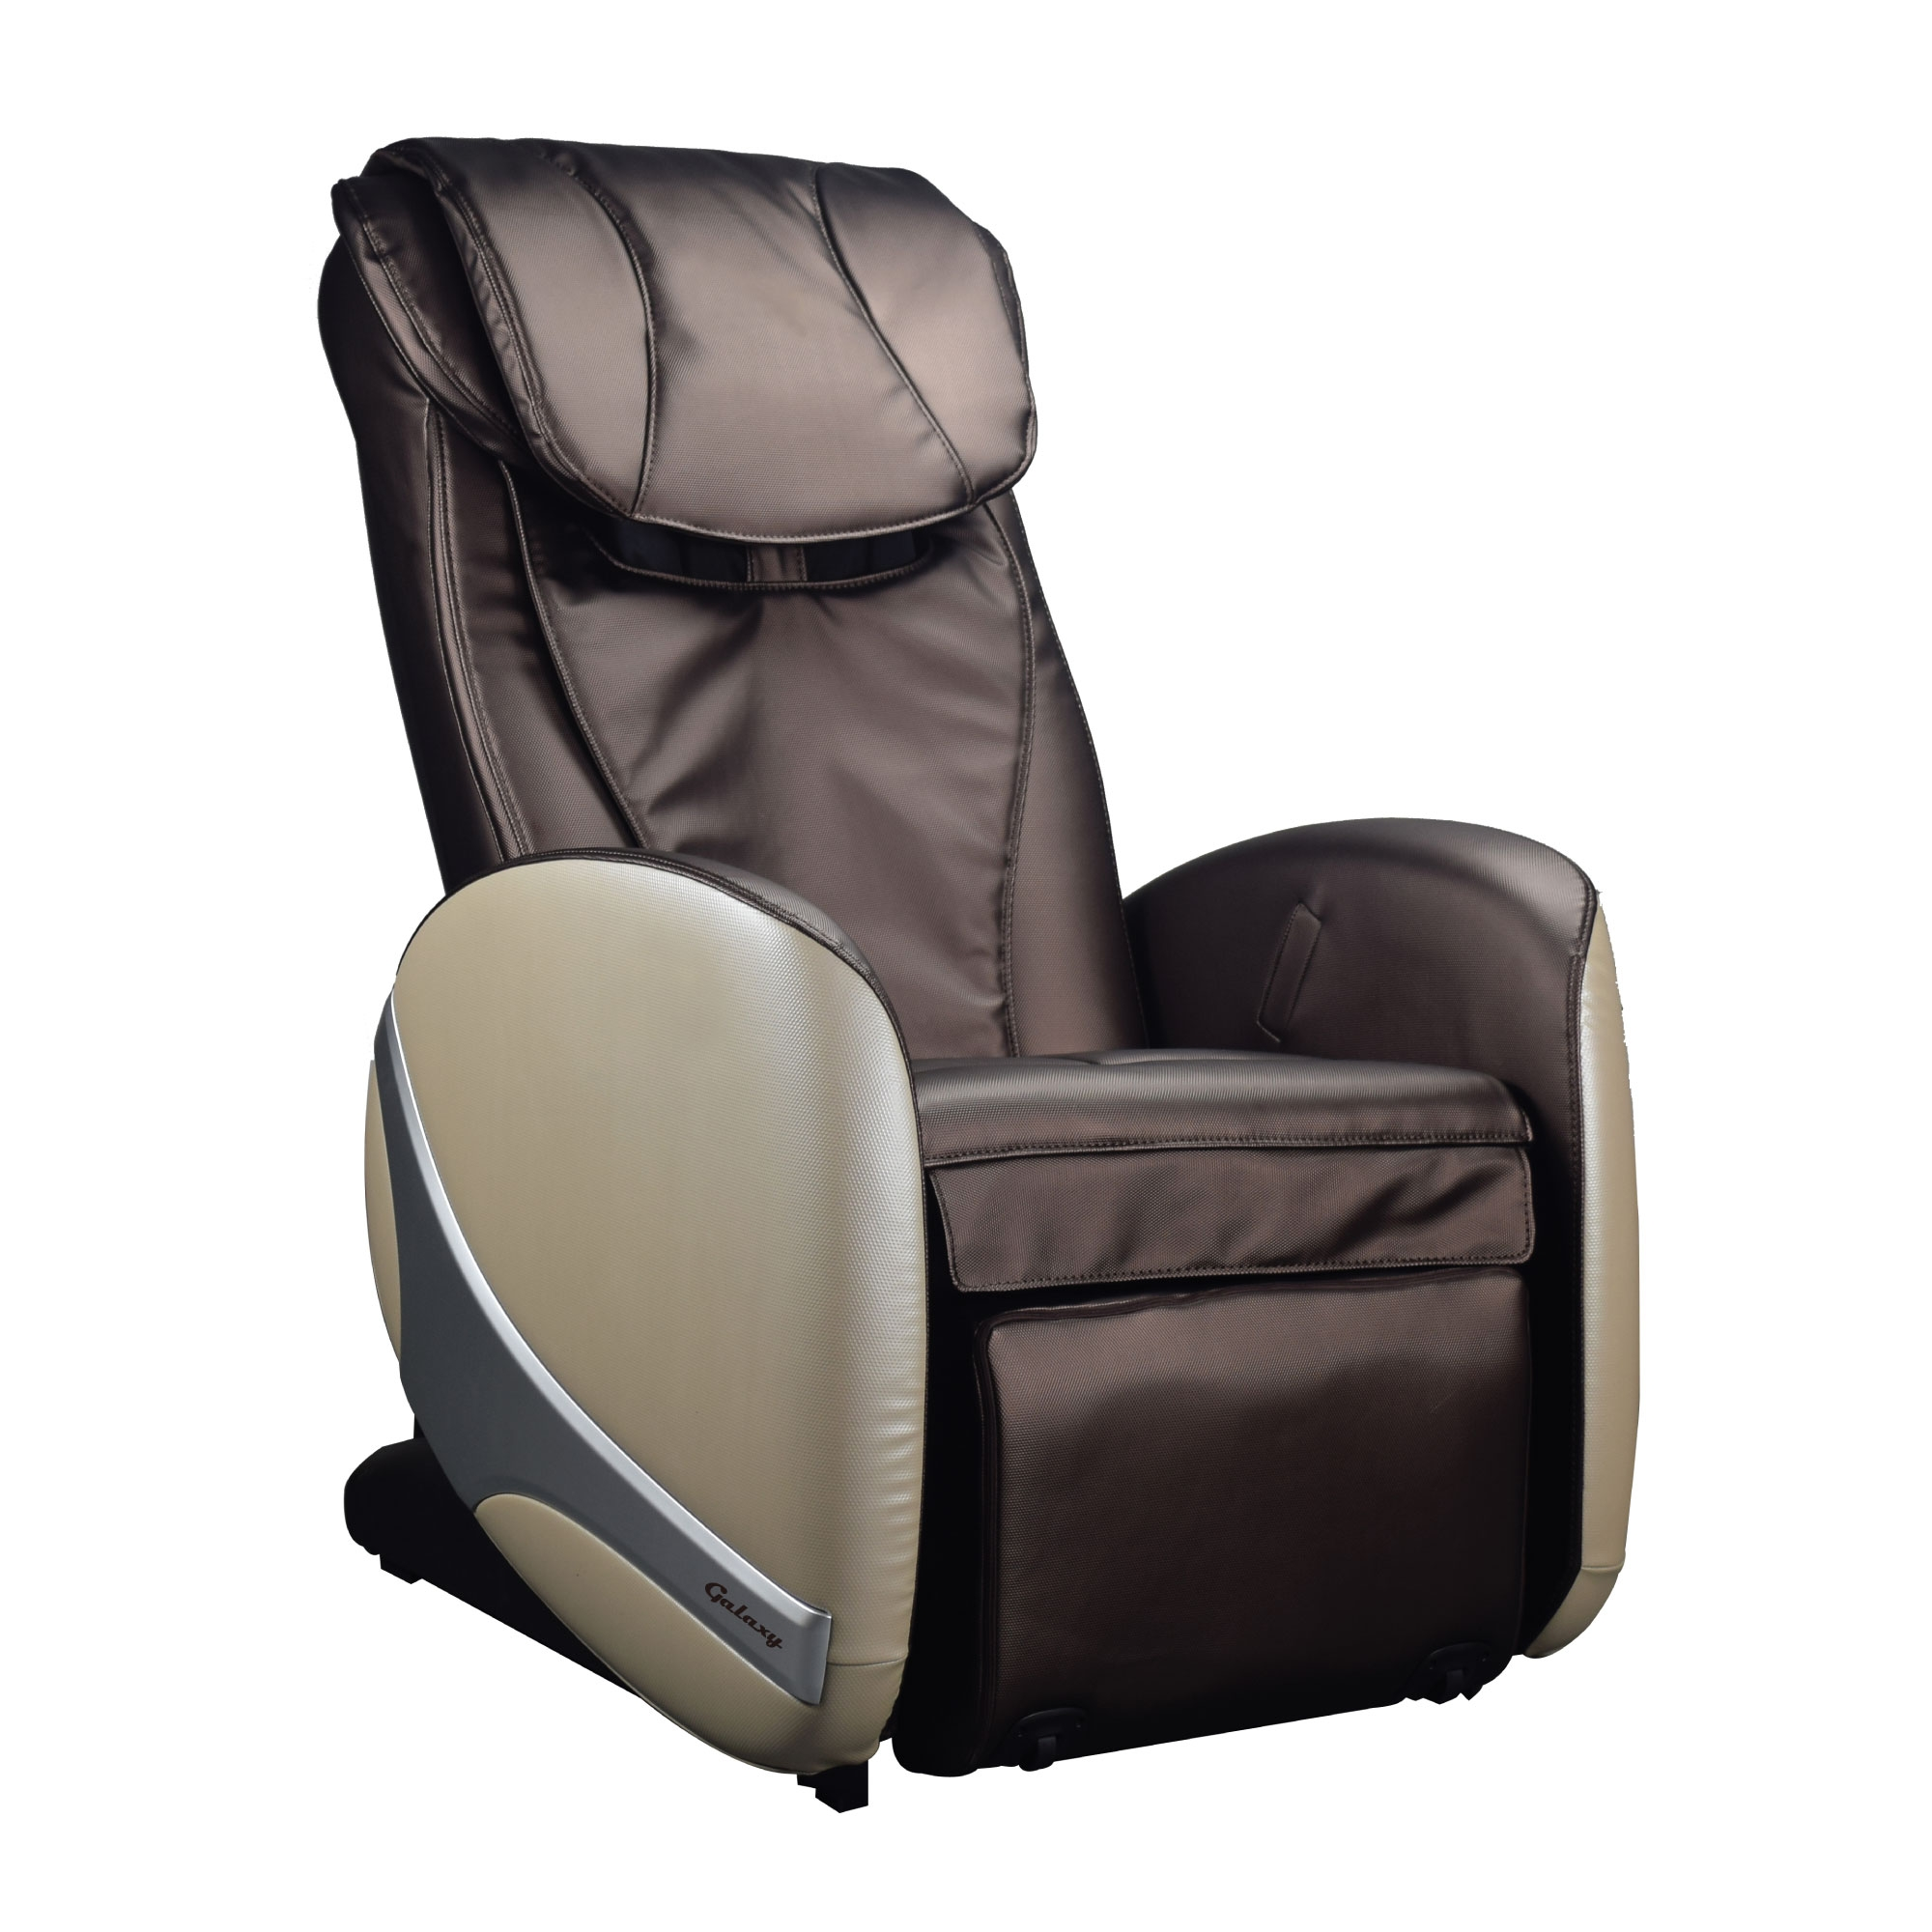 Osaki Massage Chair | Panasonic Massage Chair Costco | Refurbished Massage Chairs